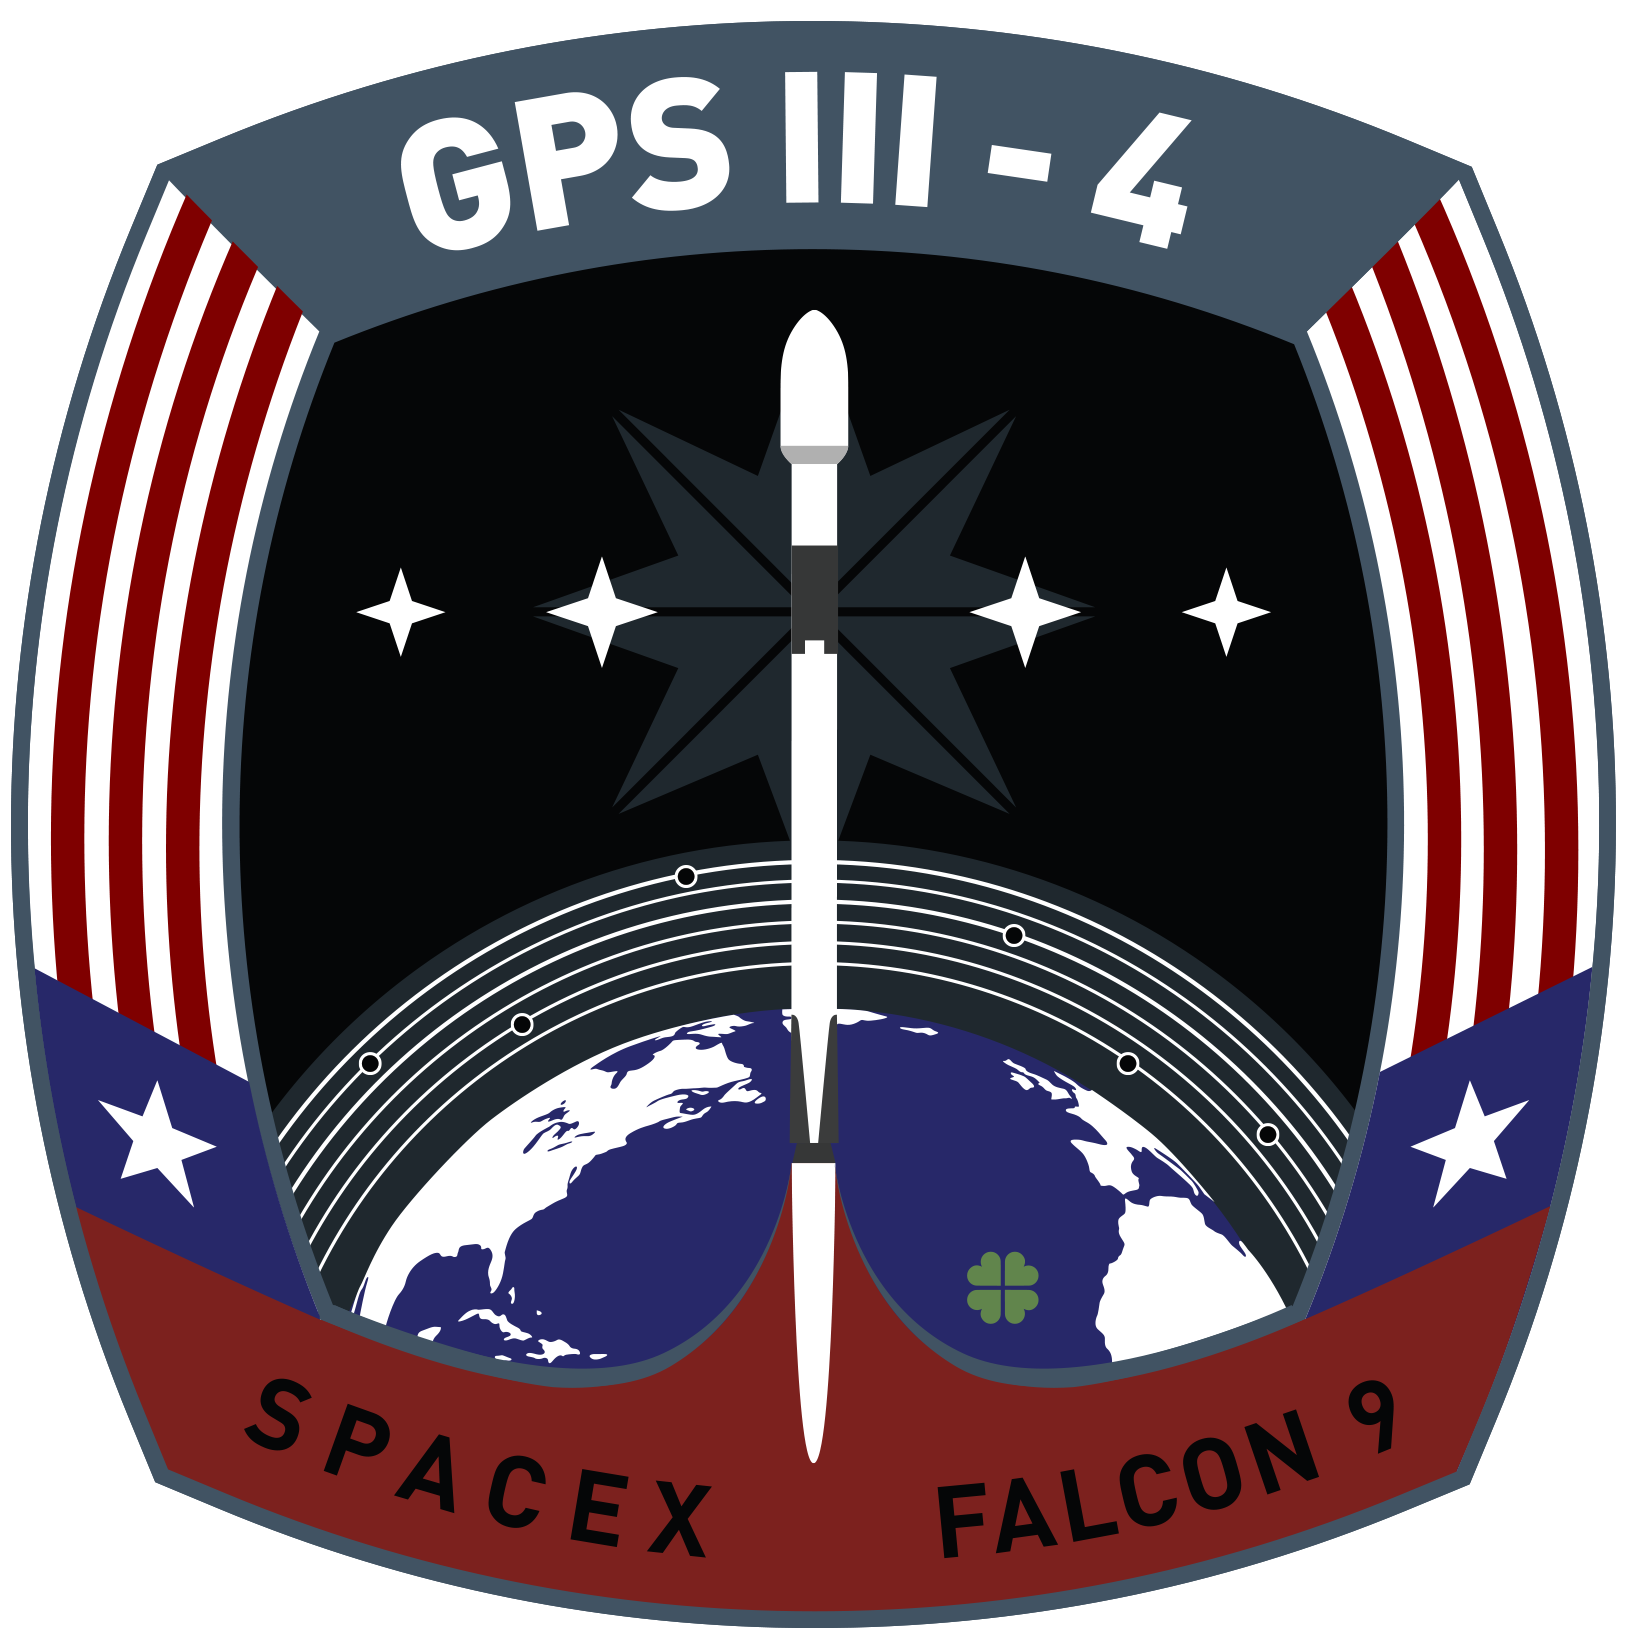 Pin By Bay Shore Boat Works Llc On Marchetti Sf 260 S Spacex Spacex Mission Spacex Falcon 9